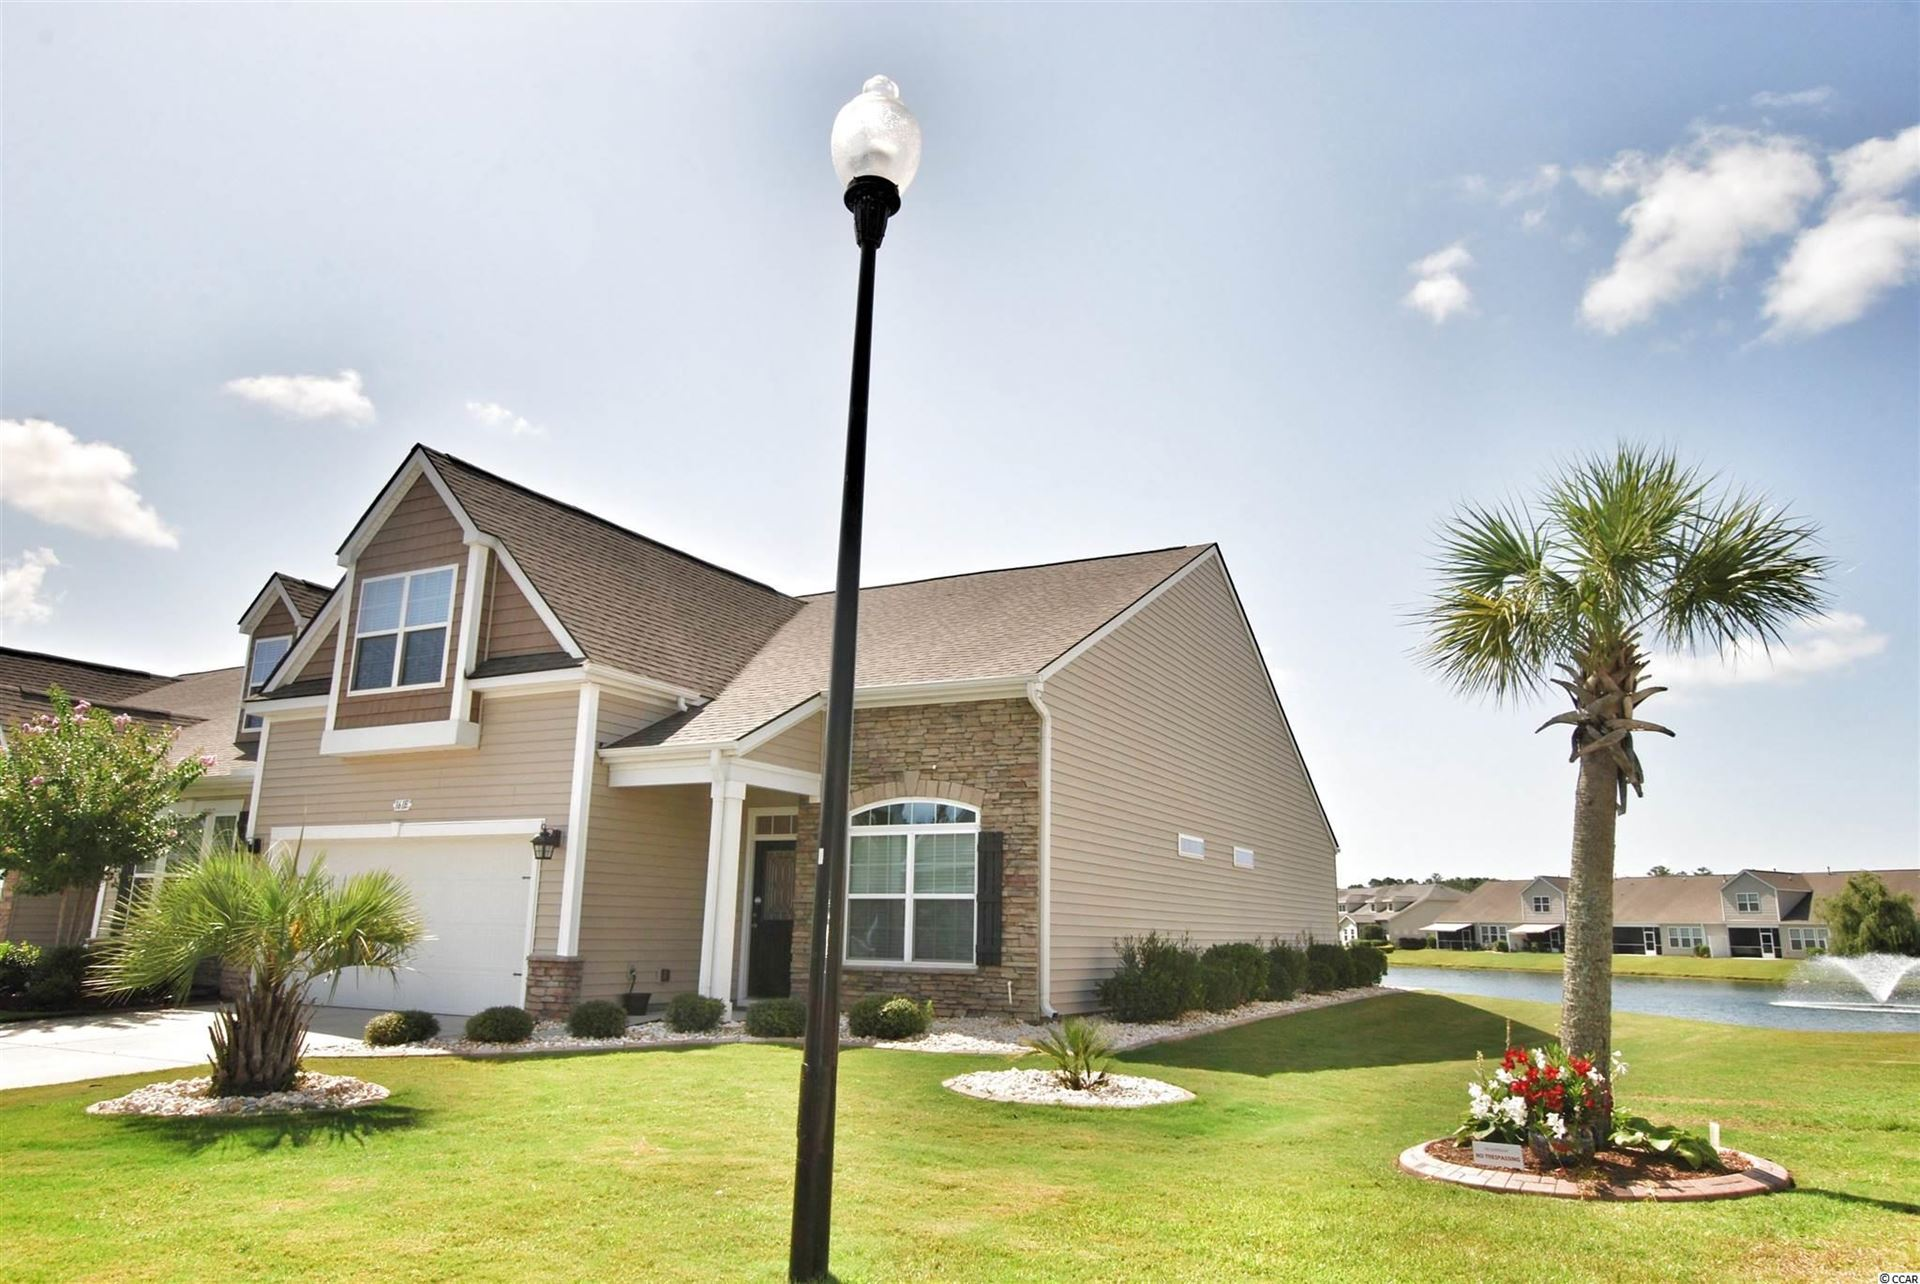 161 Parmalee Dr., Murrells Inlet, SC, 29576, Parmalee Townhomes Home For Rent